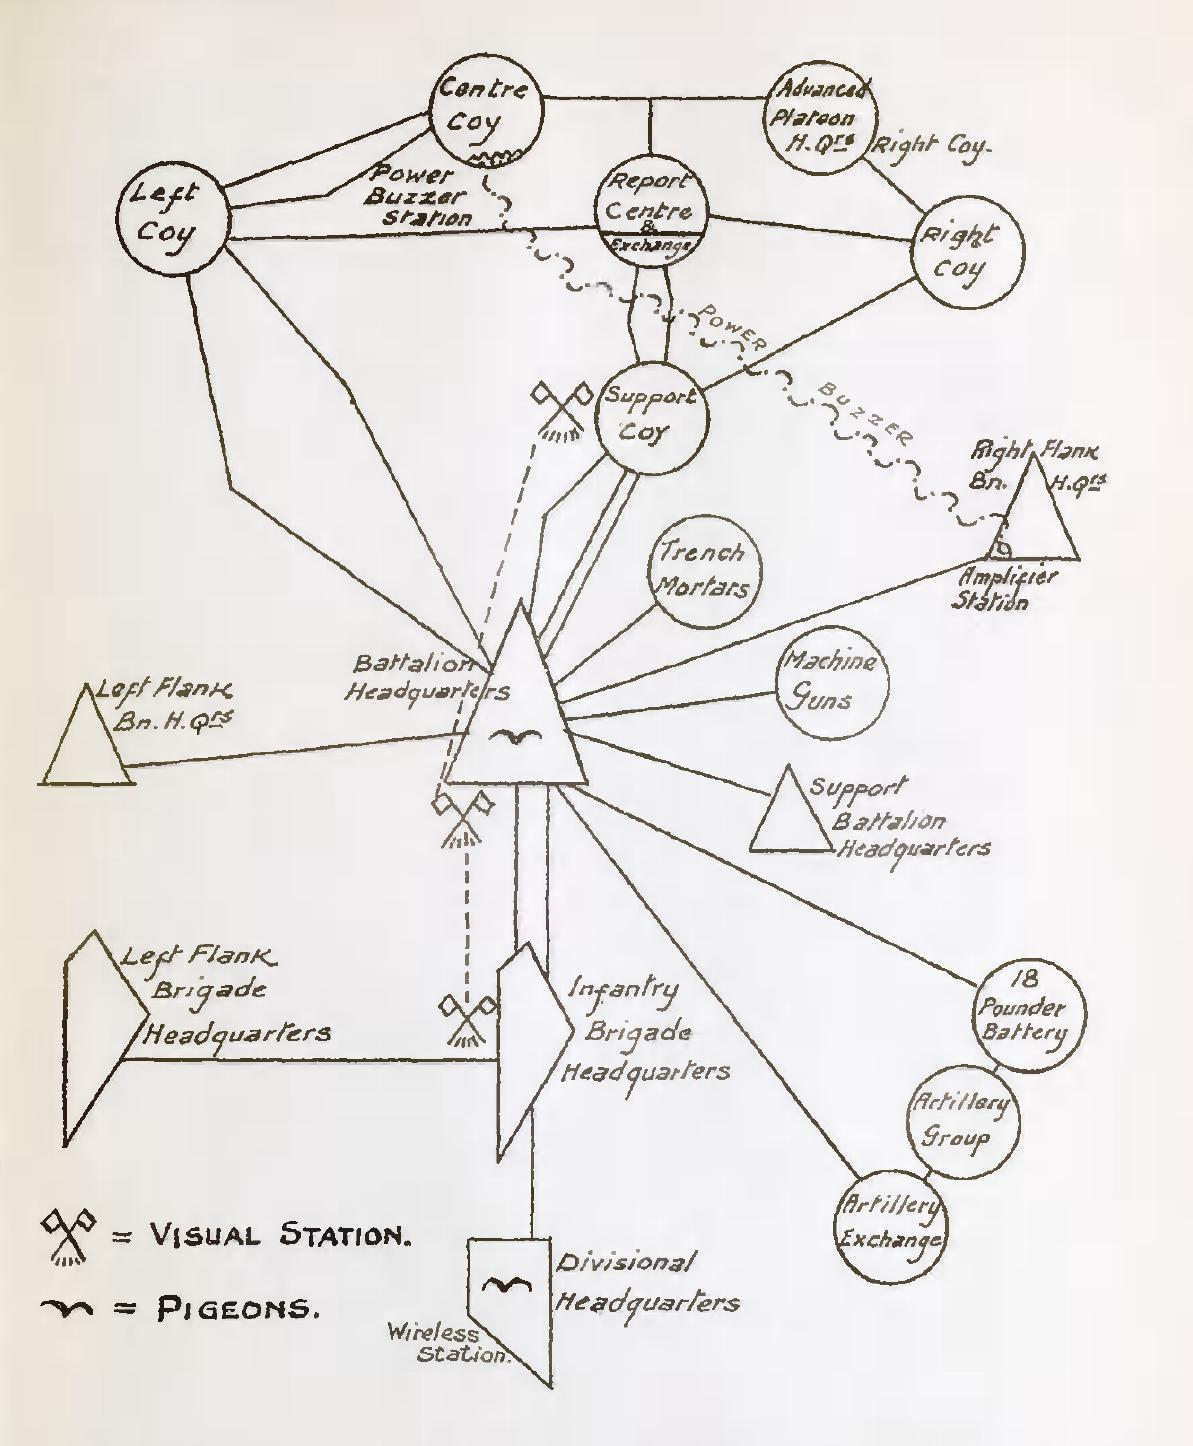 hight resolution of file diagram of trench communications hill 70 november 1917 jpg